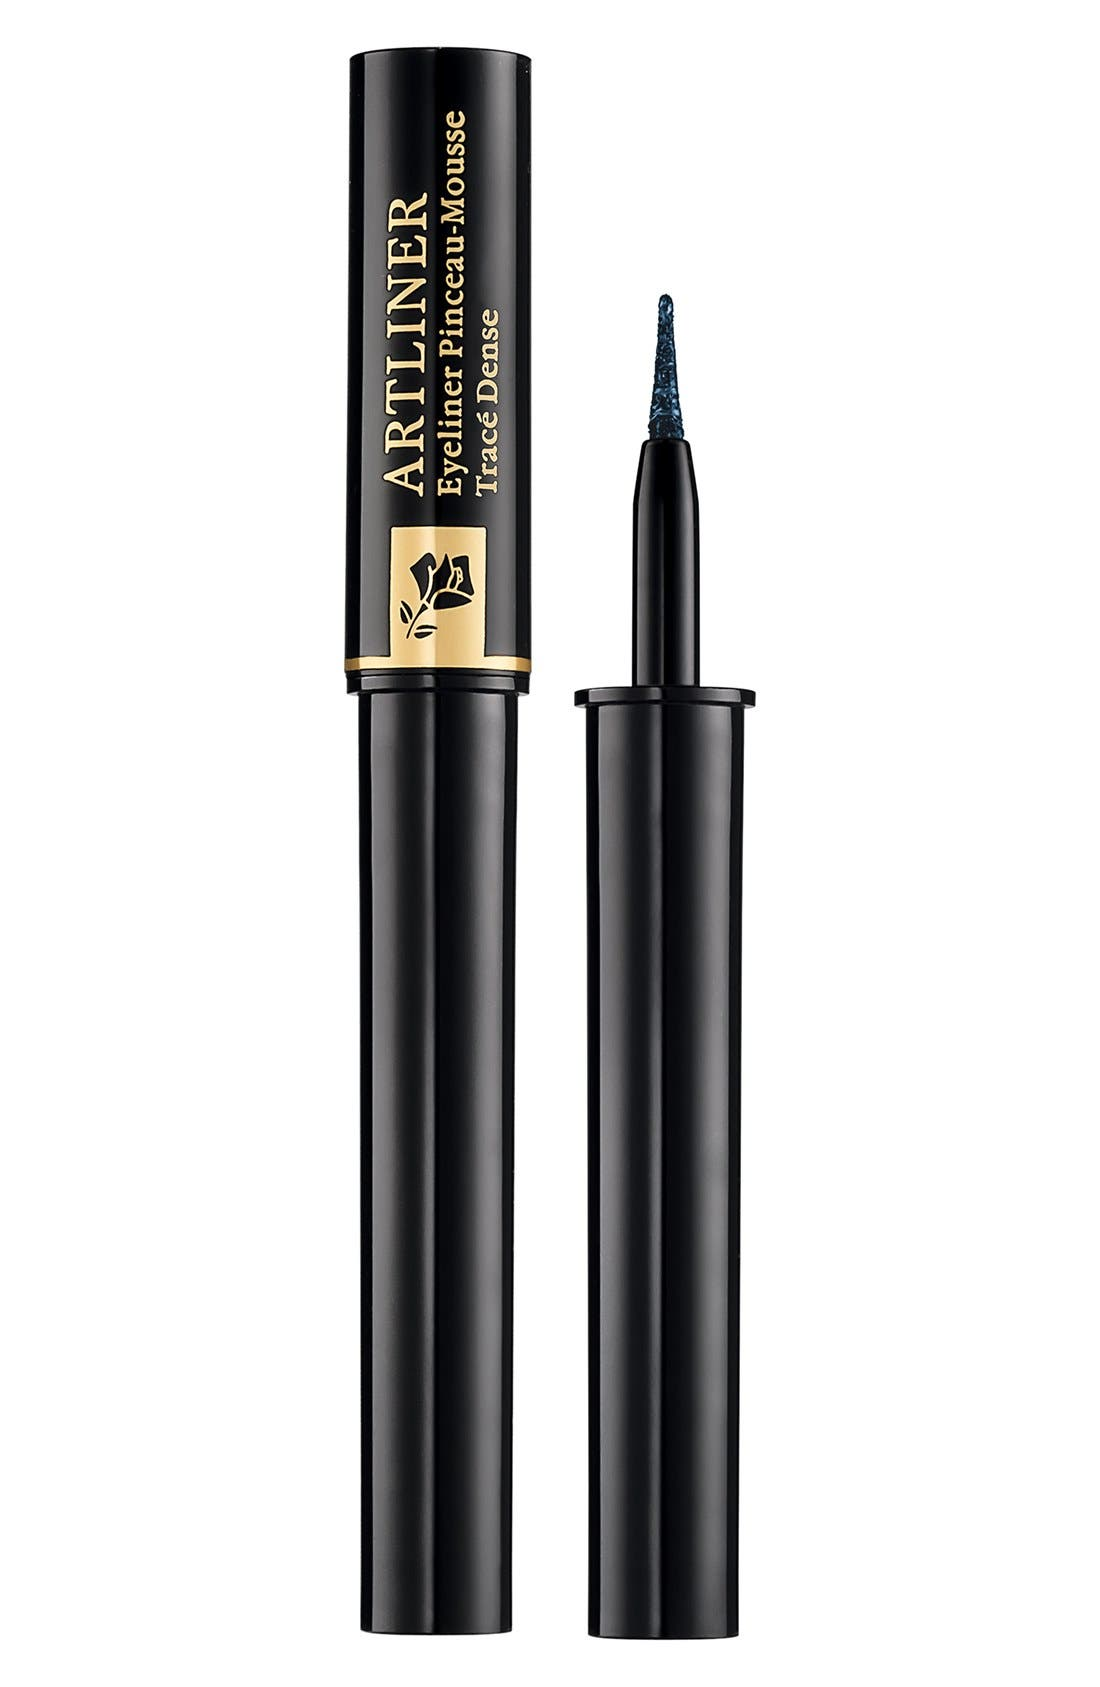 Lancôme Artliner Precision Point Liquid Eyeliner